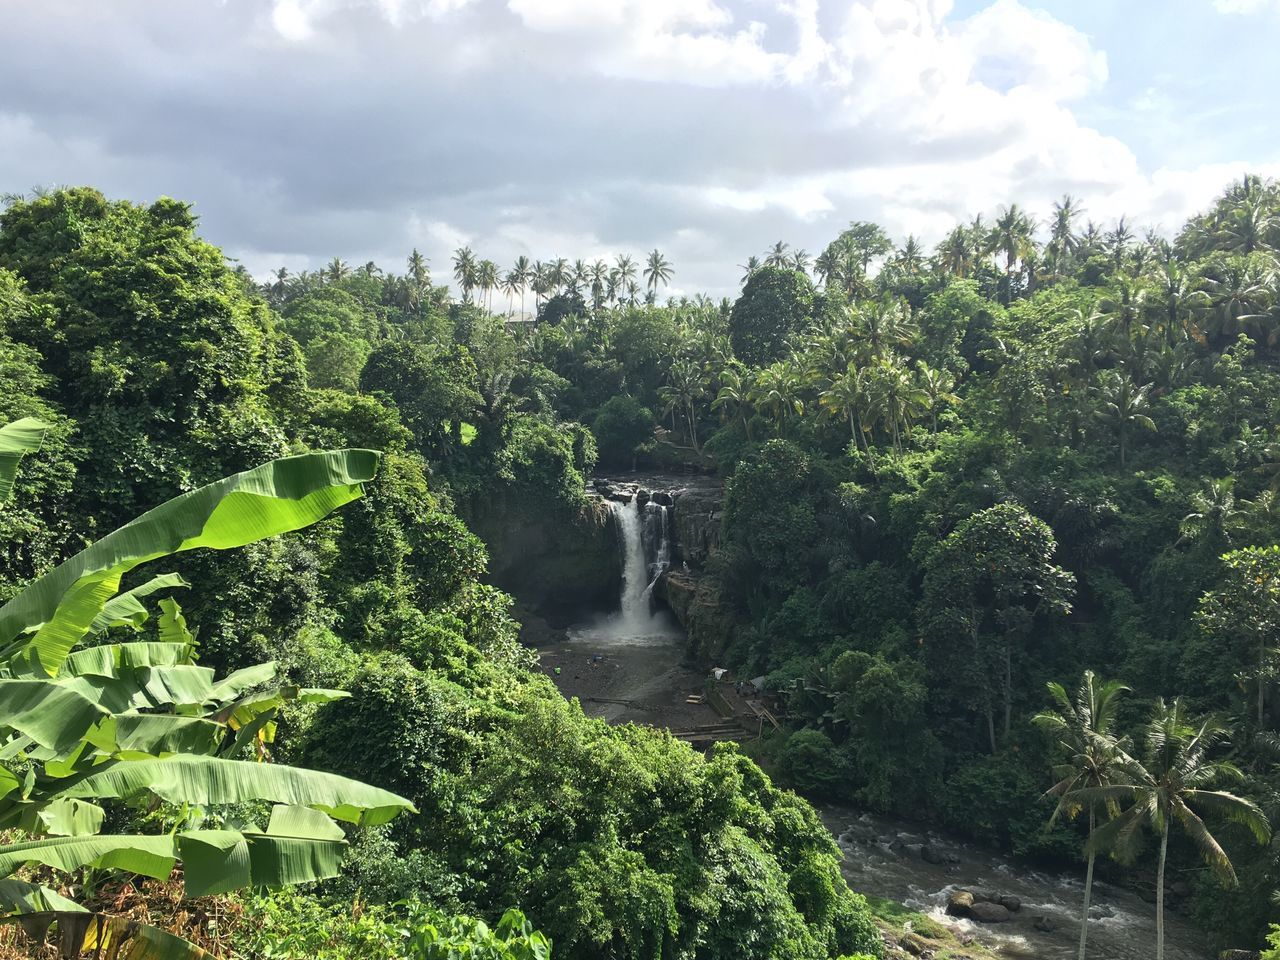 Bali Ubud Tegenungan Waterfall View Breathtaking Picturesque Scenic Paradise Beauty In Nature Water Green Picoftheday